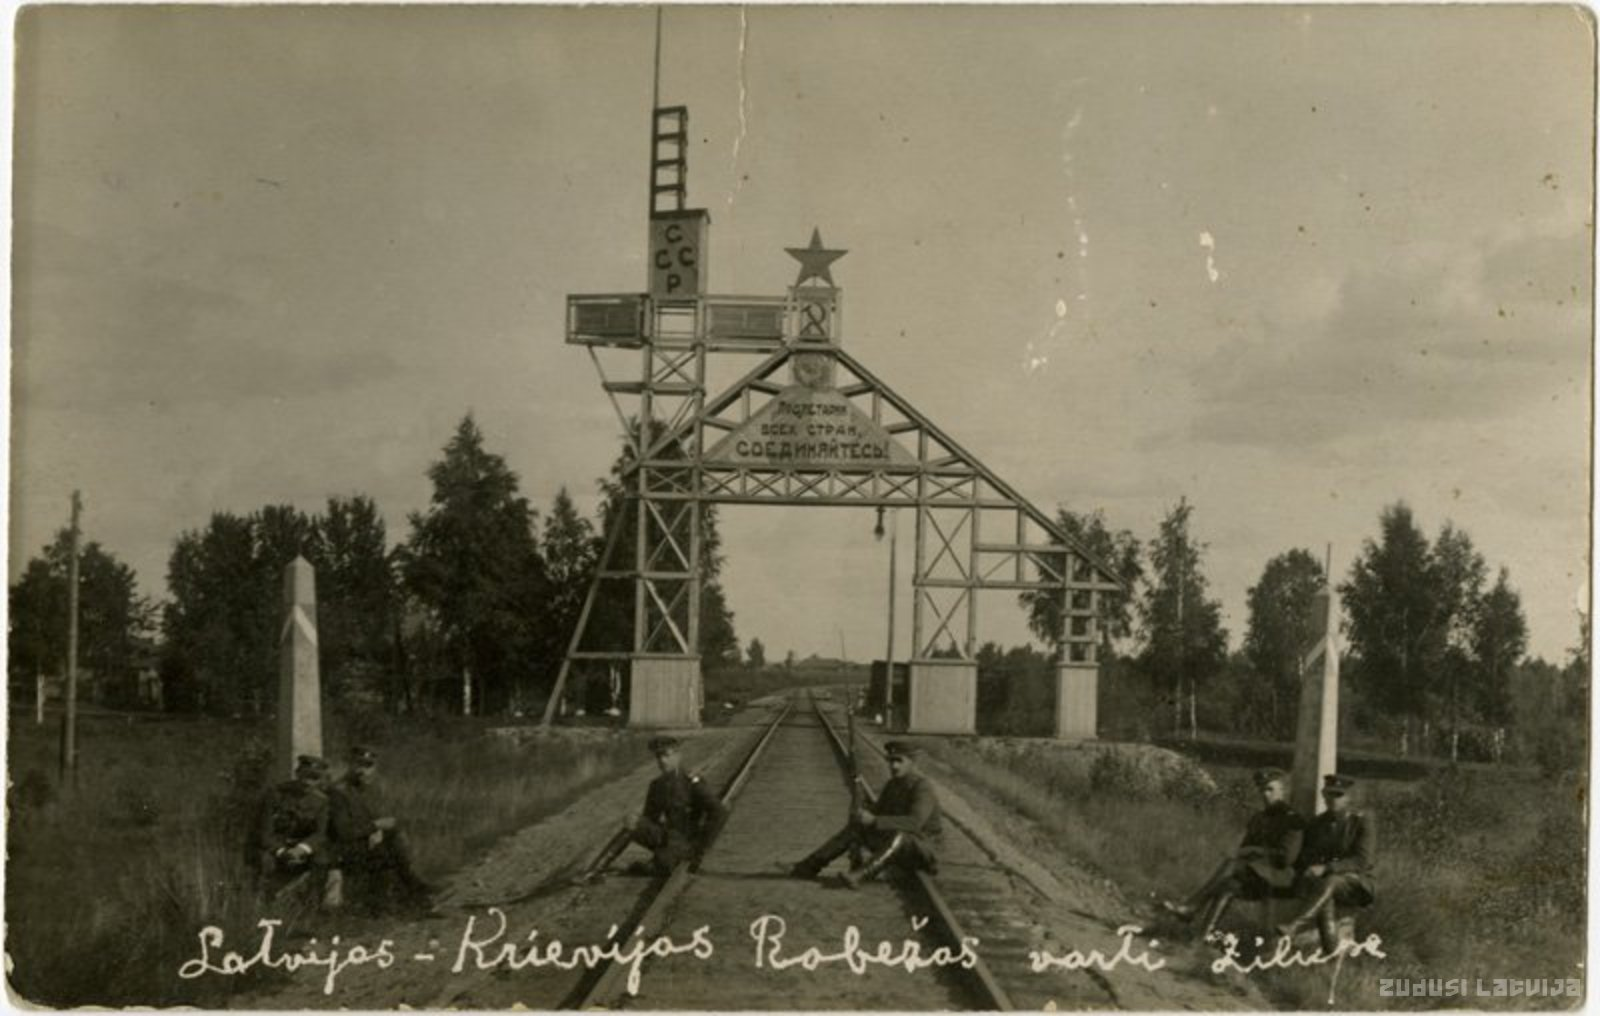 USSR (Russia)-Latvia border gate, Zilupe county. Year 1930. USSR-Latvia Railway.